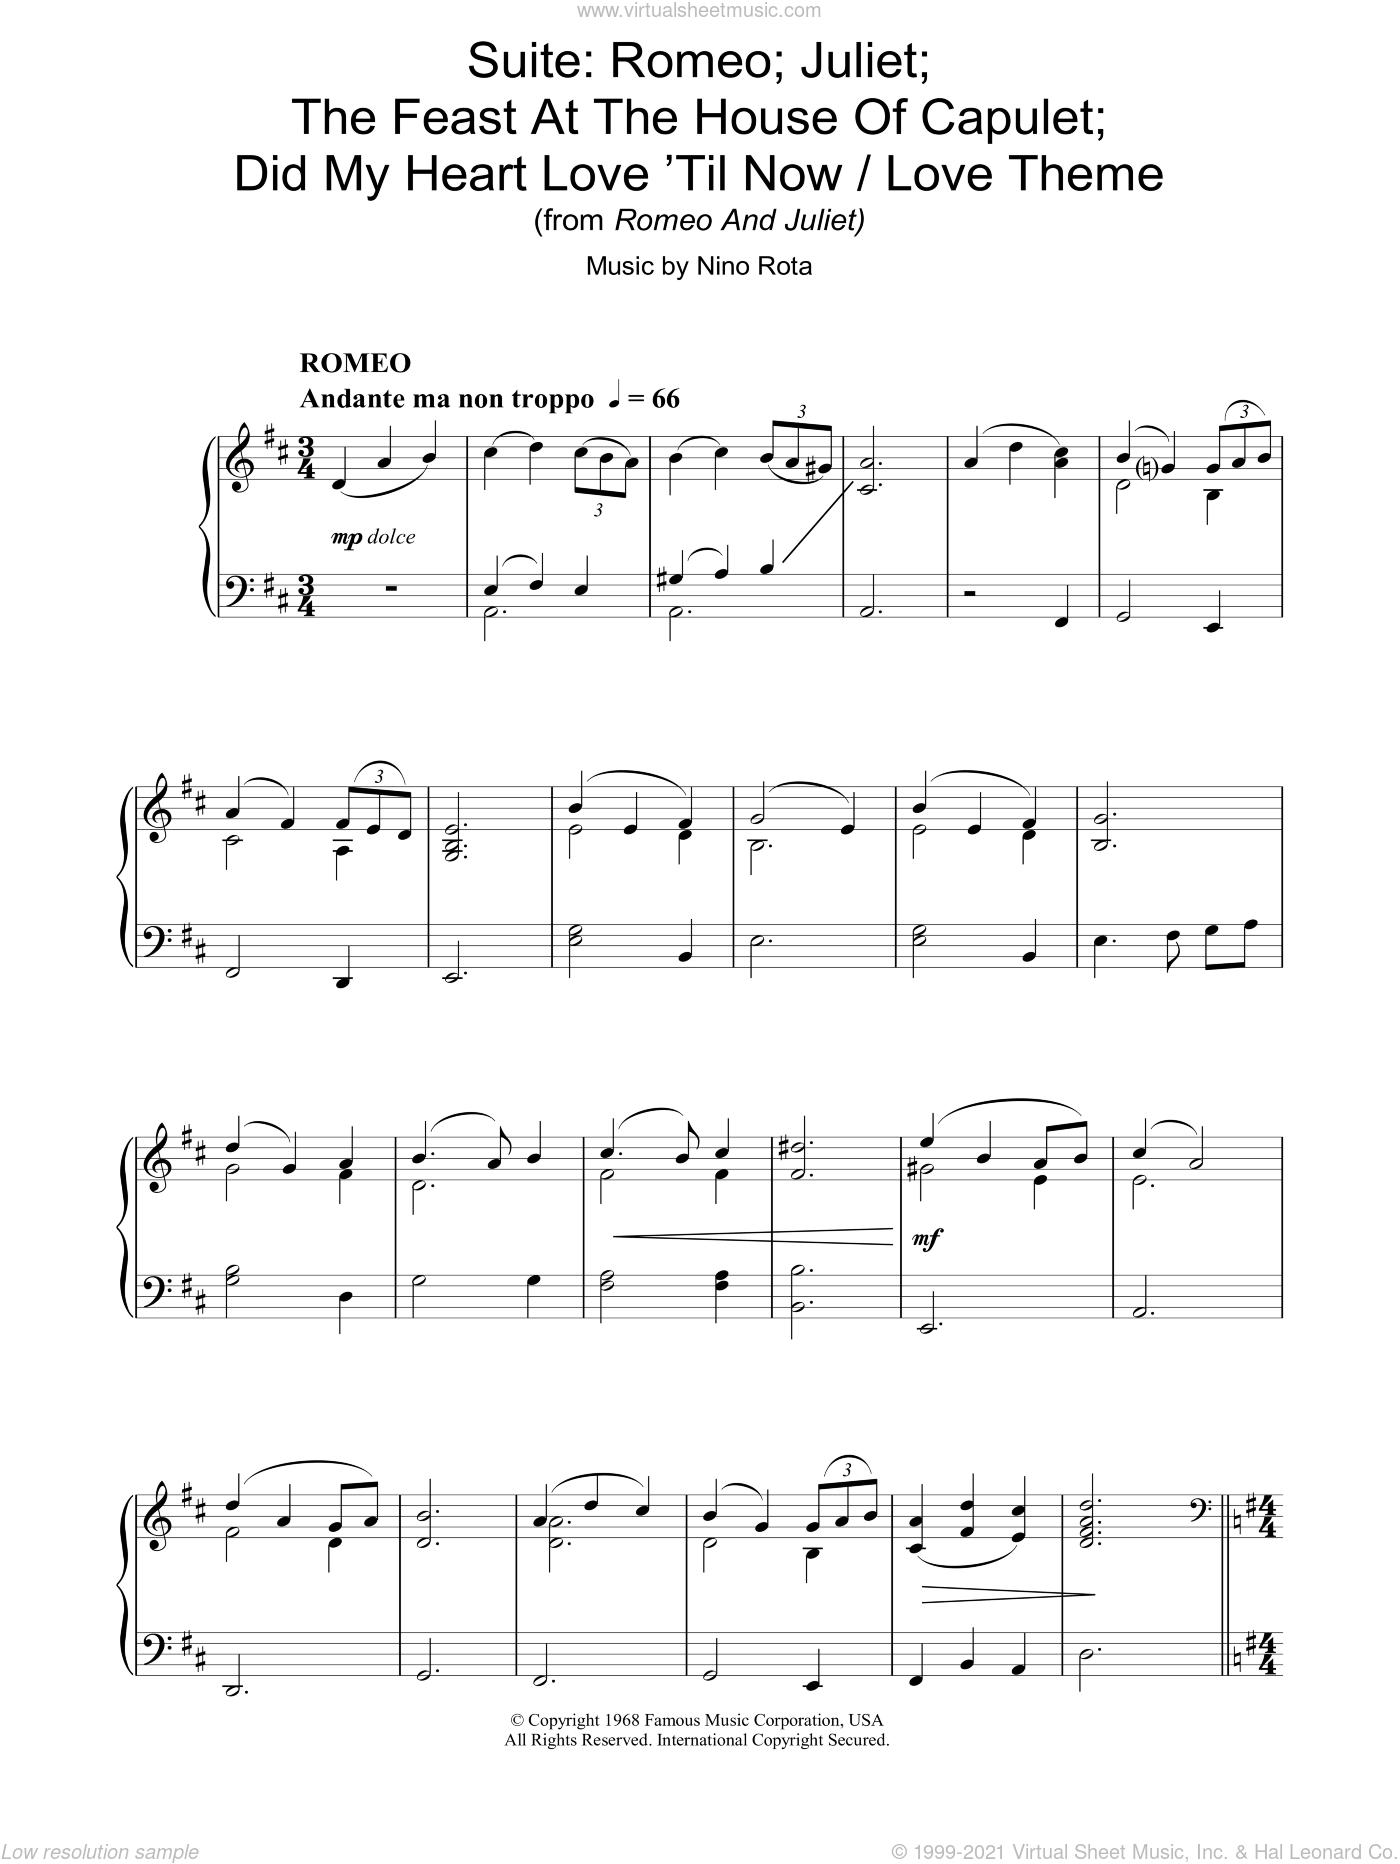 Suite: Romeo; Juliet; The Feast At The House Of Capulet; Did My Heart Love 'Til Now / Love Theme fr sheet music for piano solo by Nino Rota, intermediate. Score Image Preview.